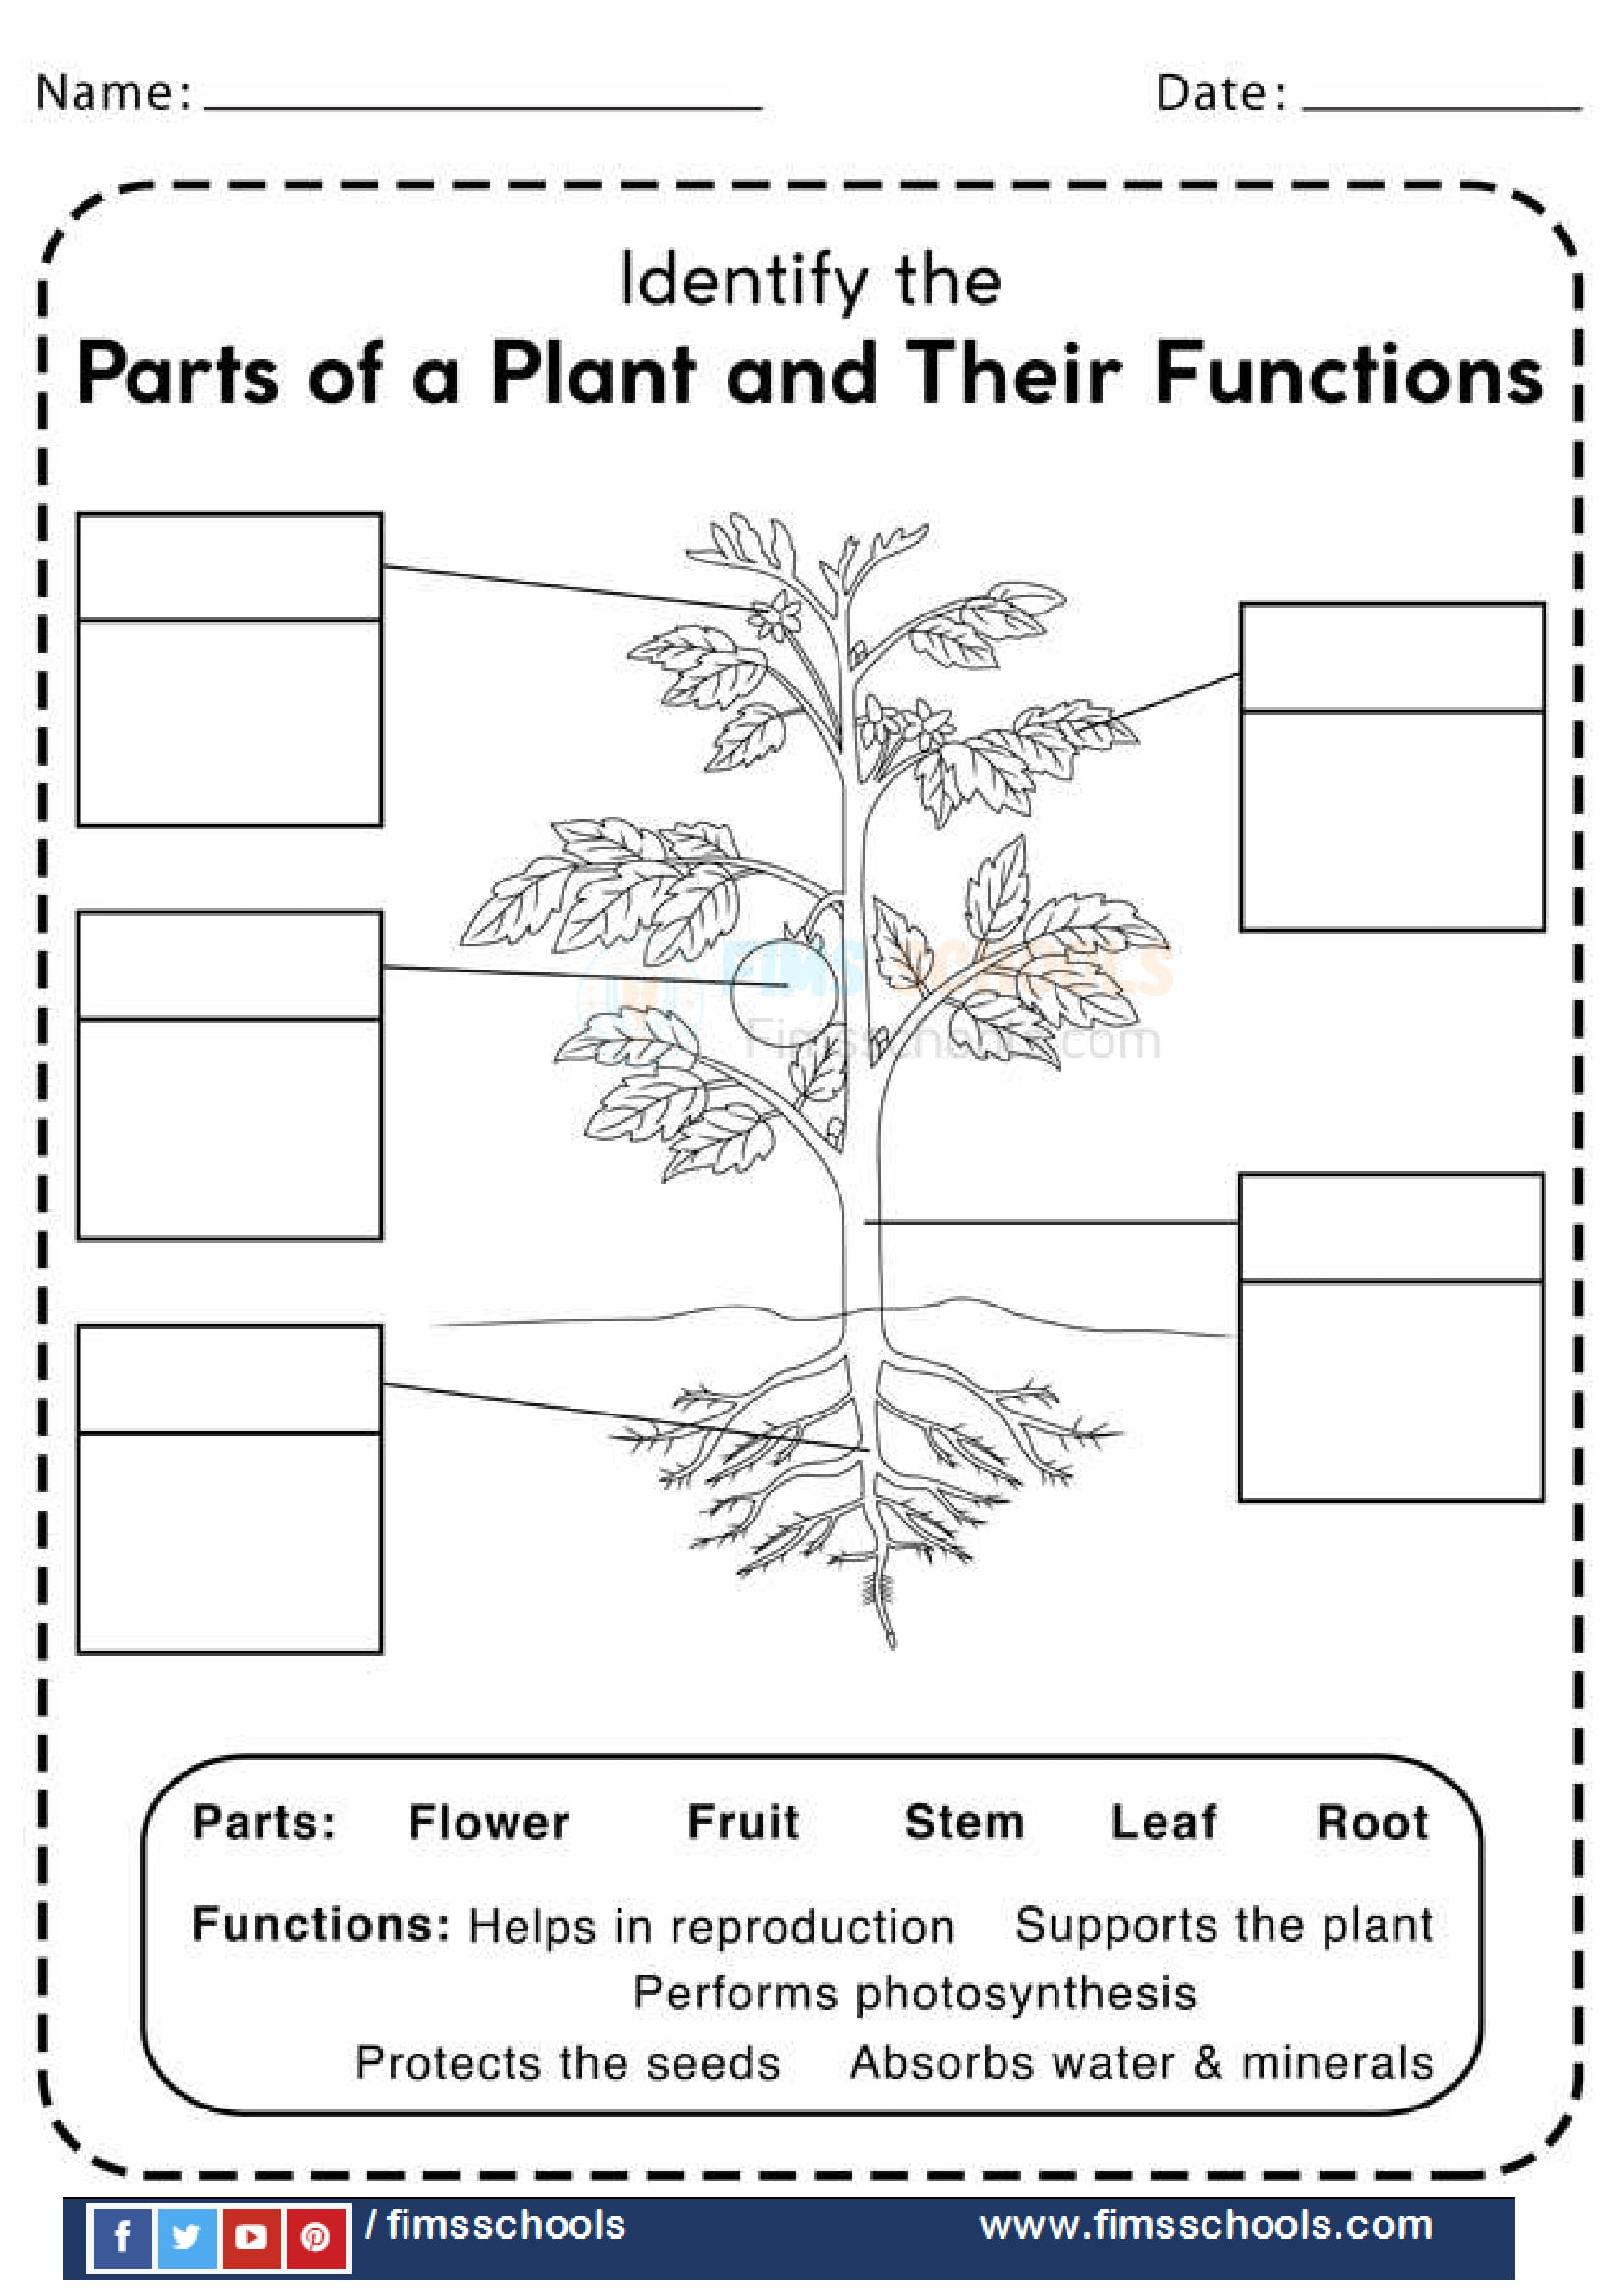 Fims Parts-of-Plants-and-Their-Functions-Worksheet-1